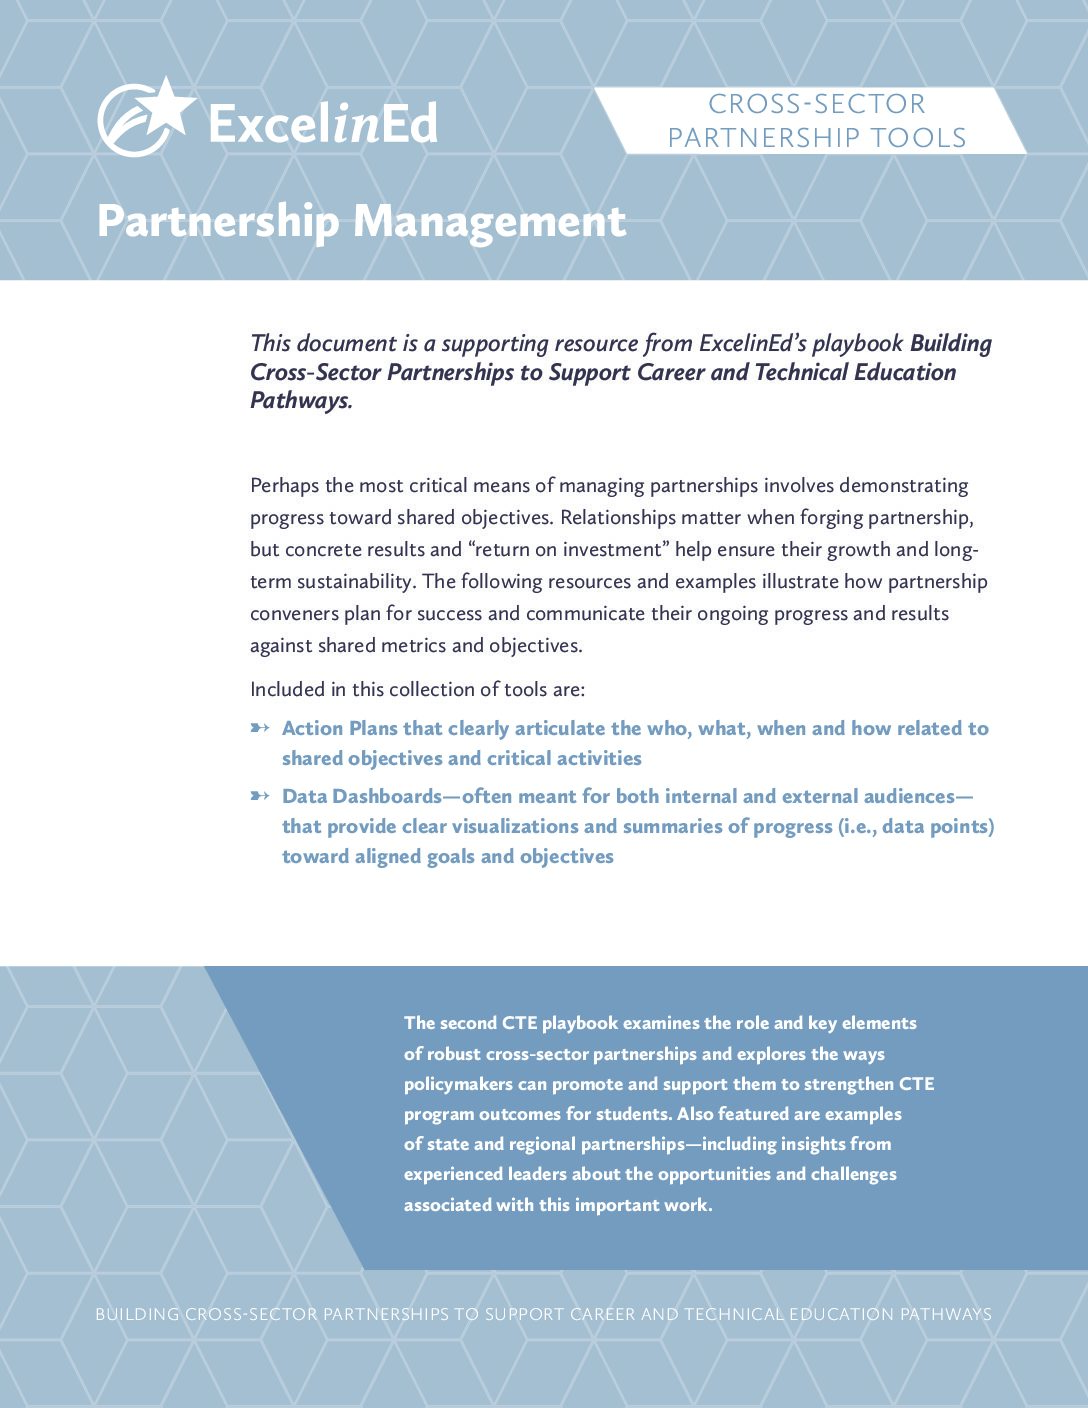 Playbook 2: Cross-Sector Partnership Tools &#8211; Partnership Management &#8211; May 2018>									 									</a> 									<h5><a href=